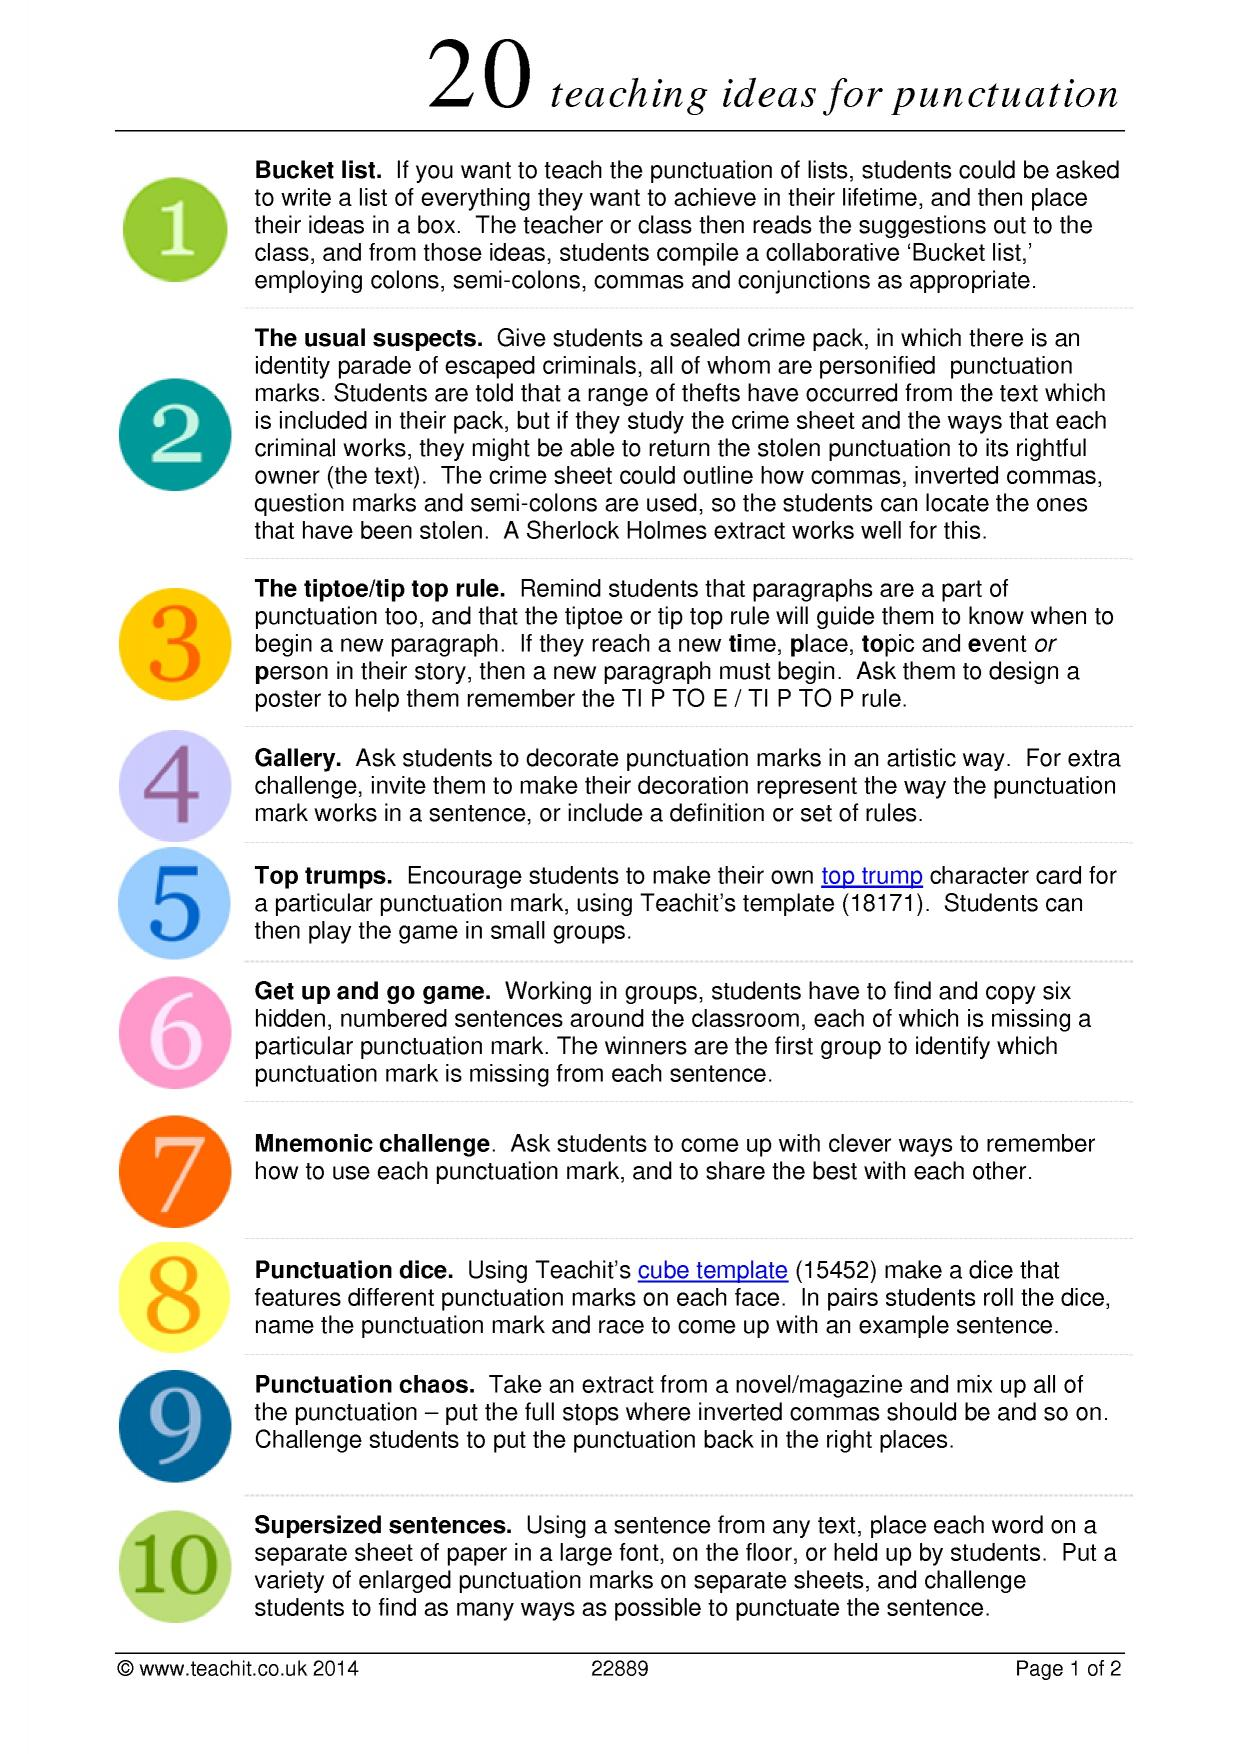 20 teaching ideas for punctuation